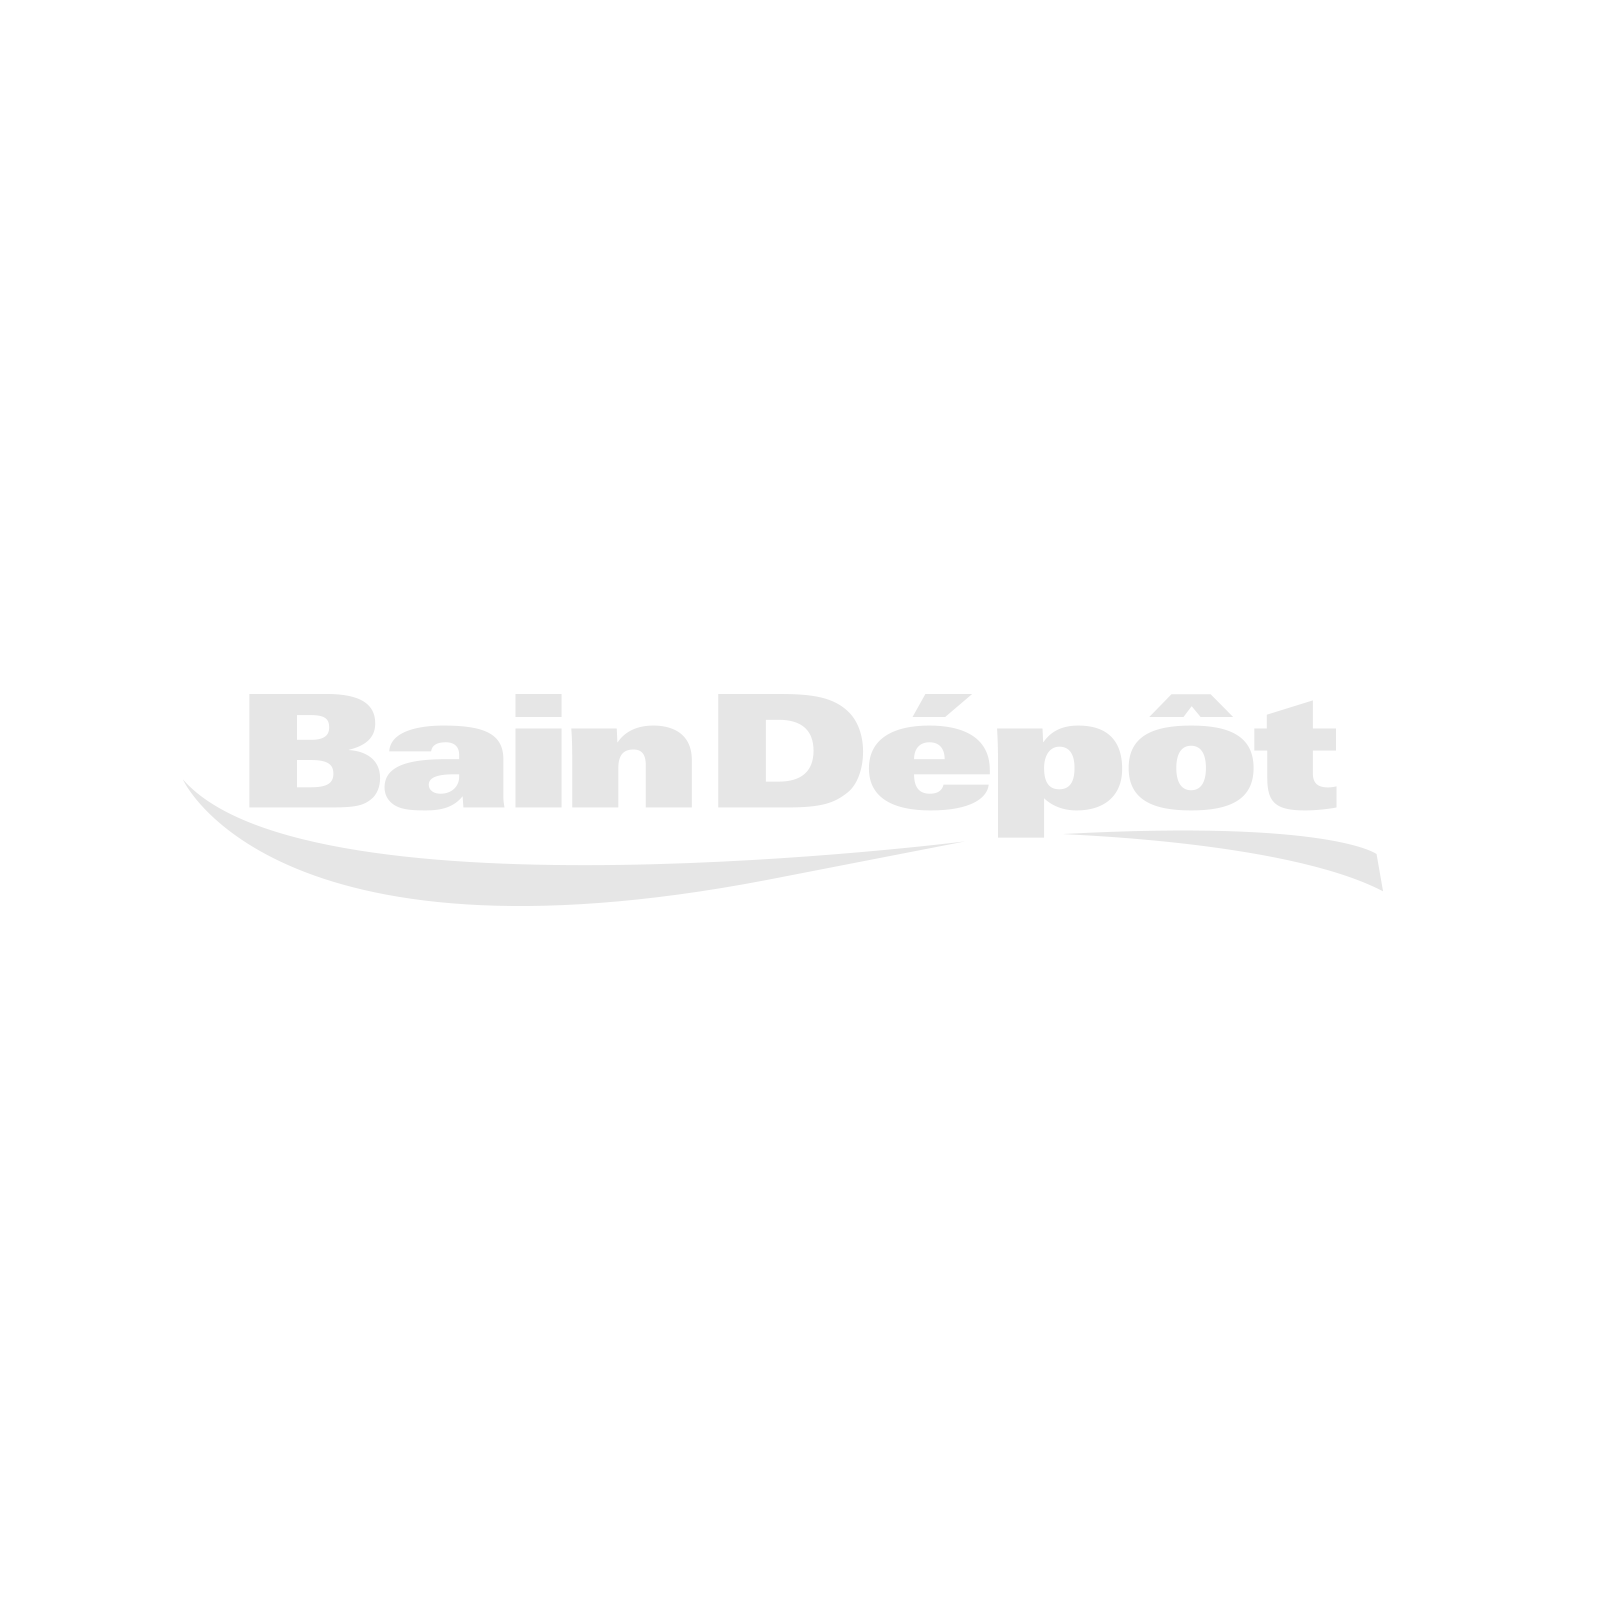 "30"" x 34.5"" Three-drawer base kitchen cabinet"